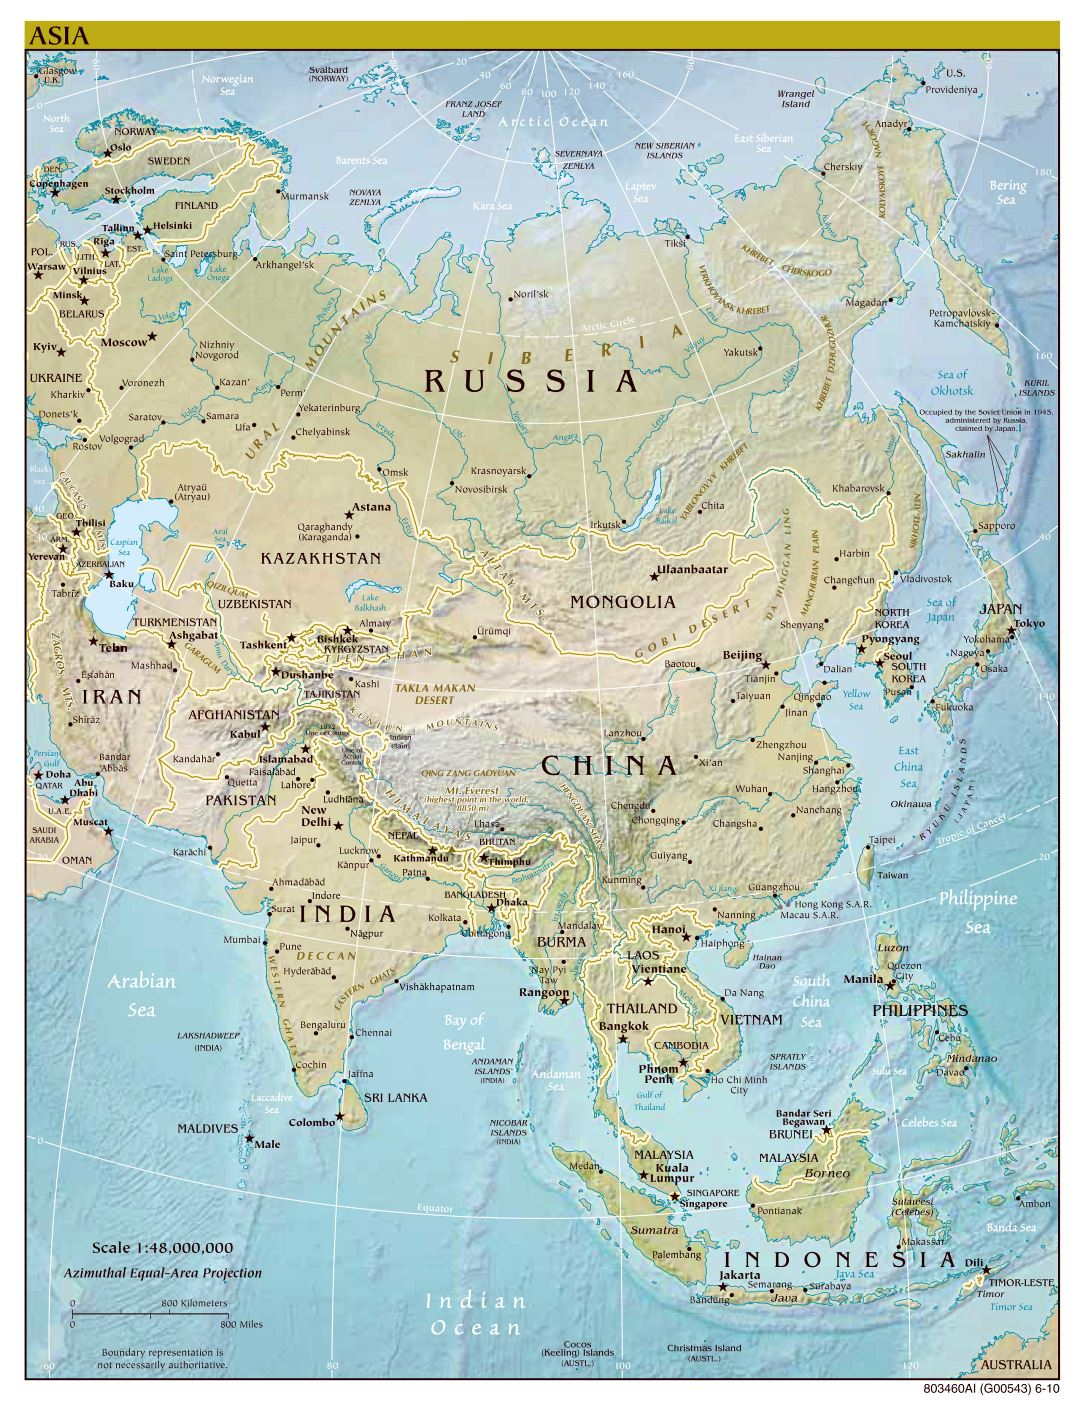 Large scale political map of Asia with relief, major cities and capitals - 2010